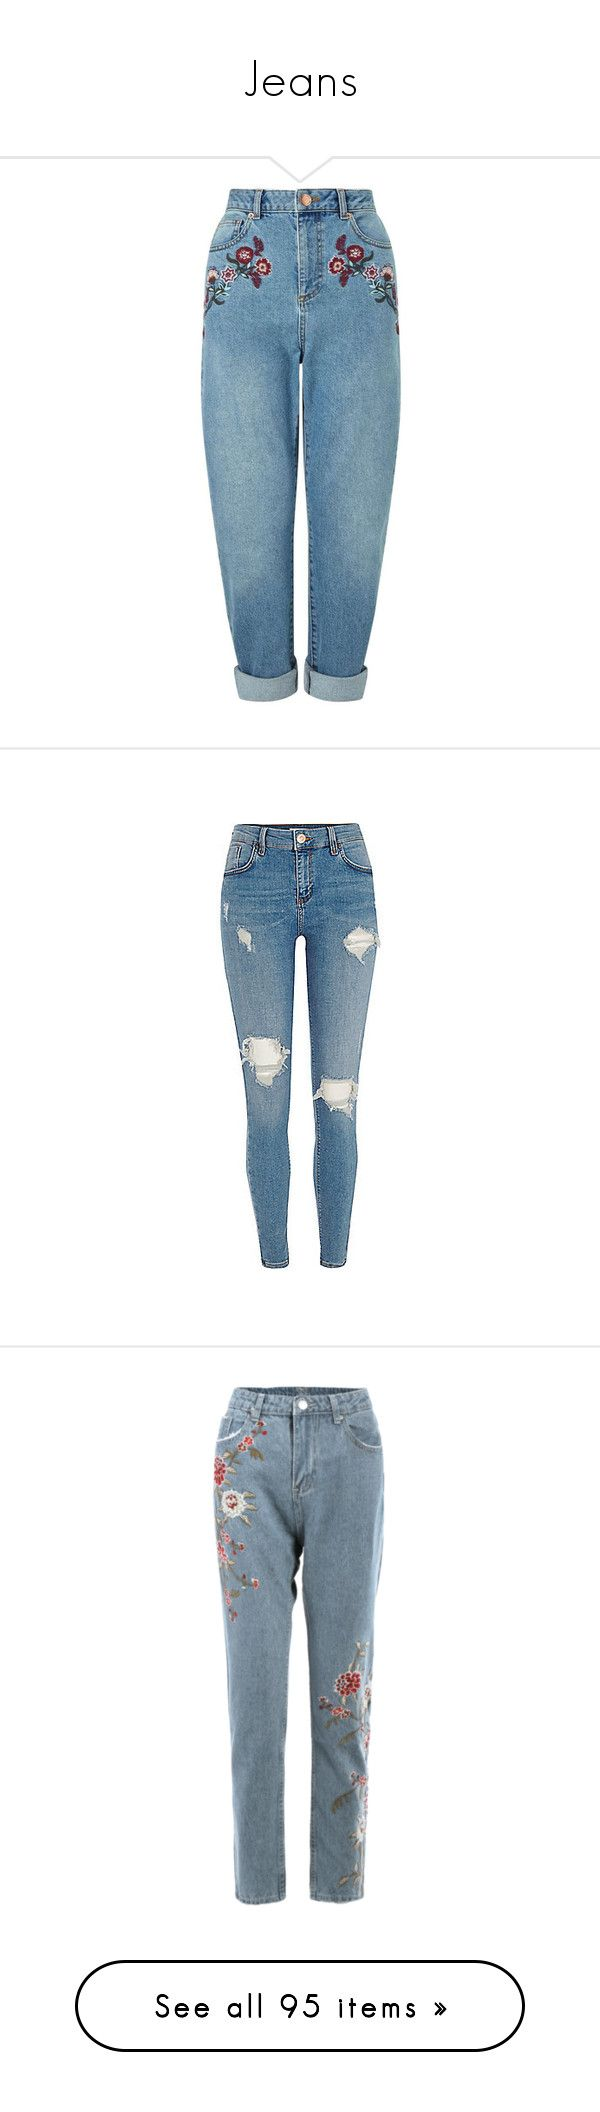 """Jeans"" by ekaterina-stepura on Polyvore featuring jeans, pants, bottoms, pantalones, blue, blue jeans, embroidery jeans, miss selfridge, embroidered jeans и miss selfridge jeans"